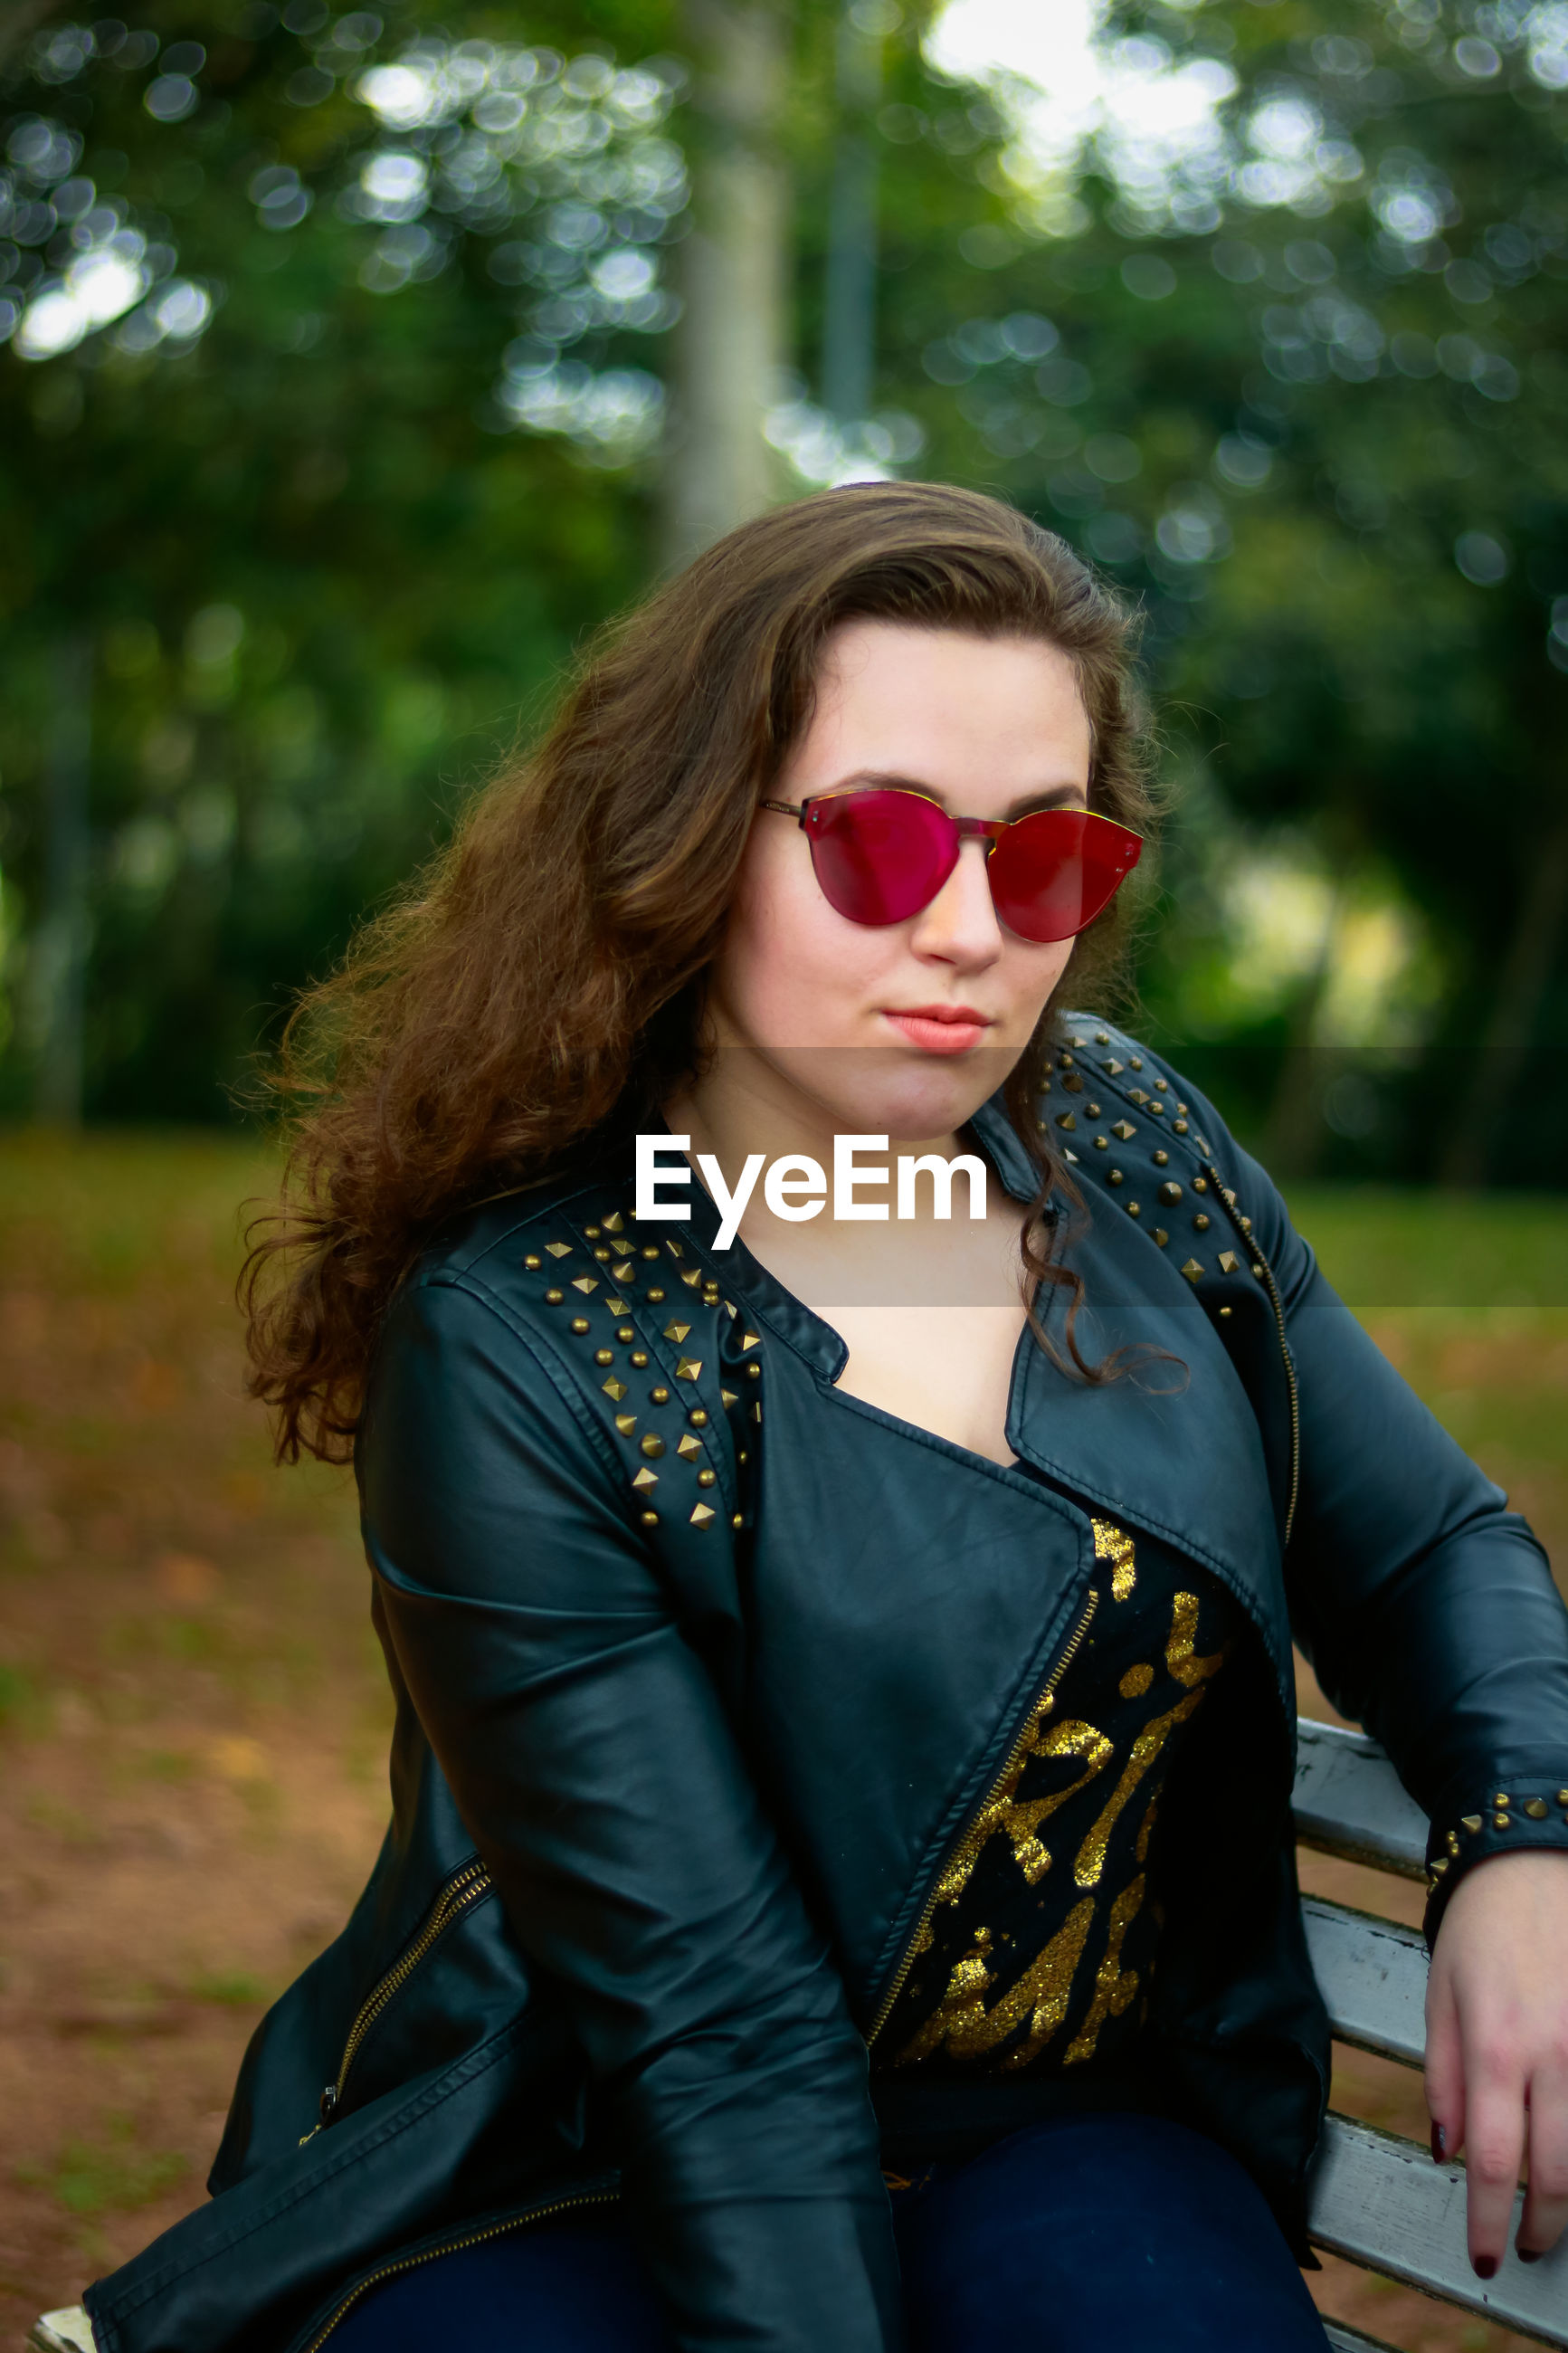 Portrait of woman wearing sunglasses against trees